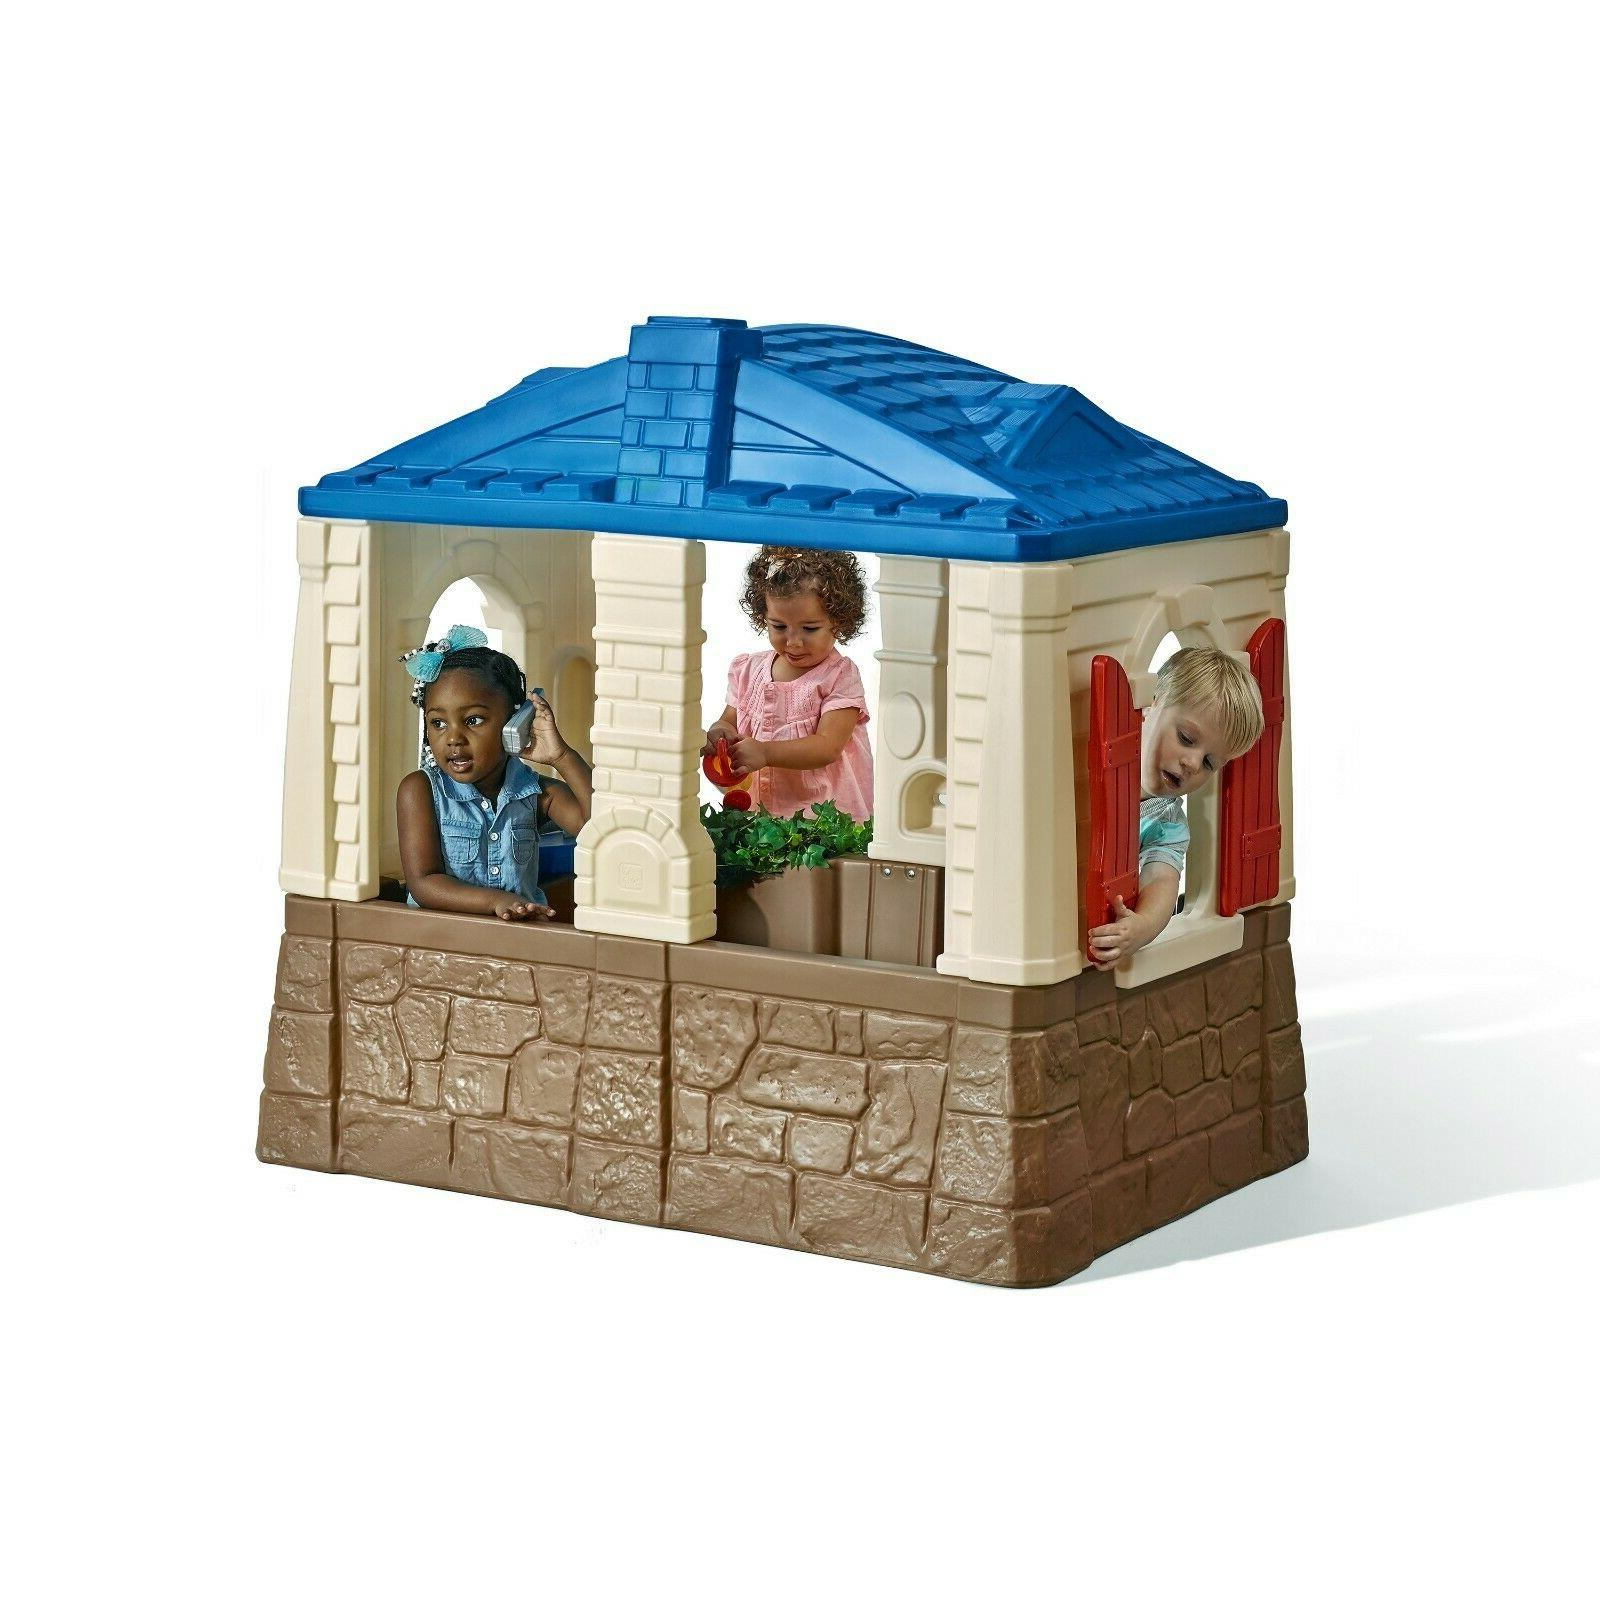 Outdoor Cottage Playhouse Backyard Play House Multicolour